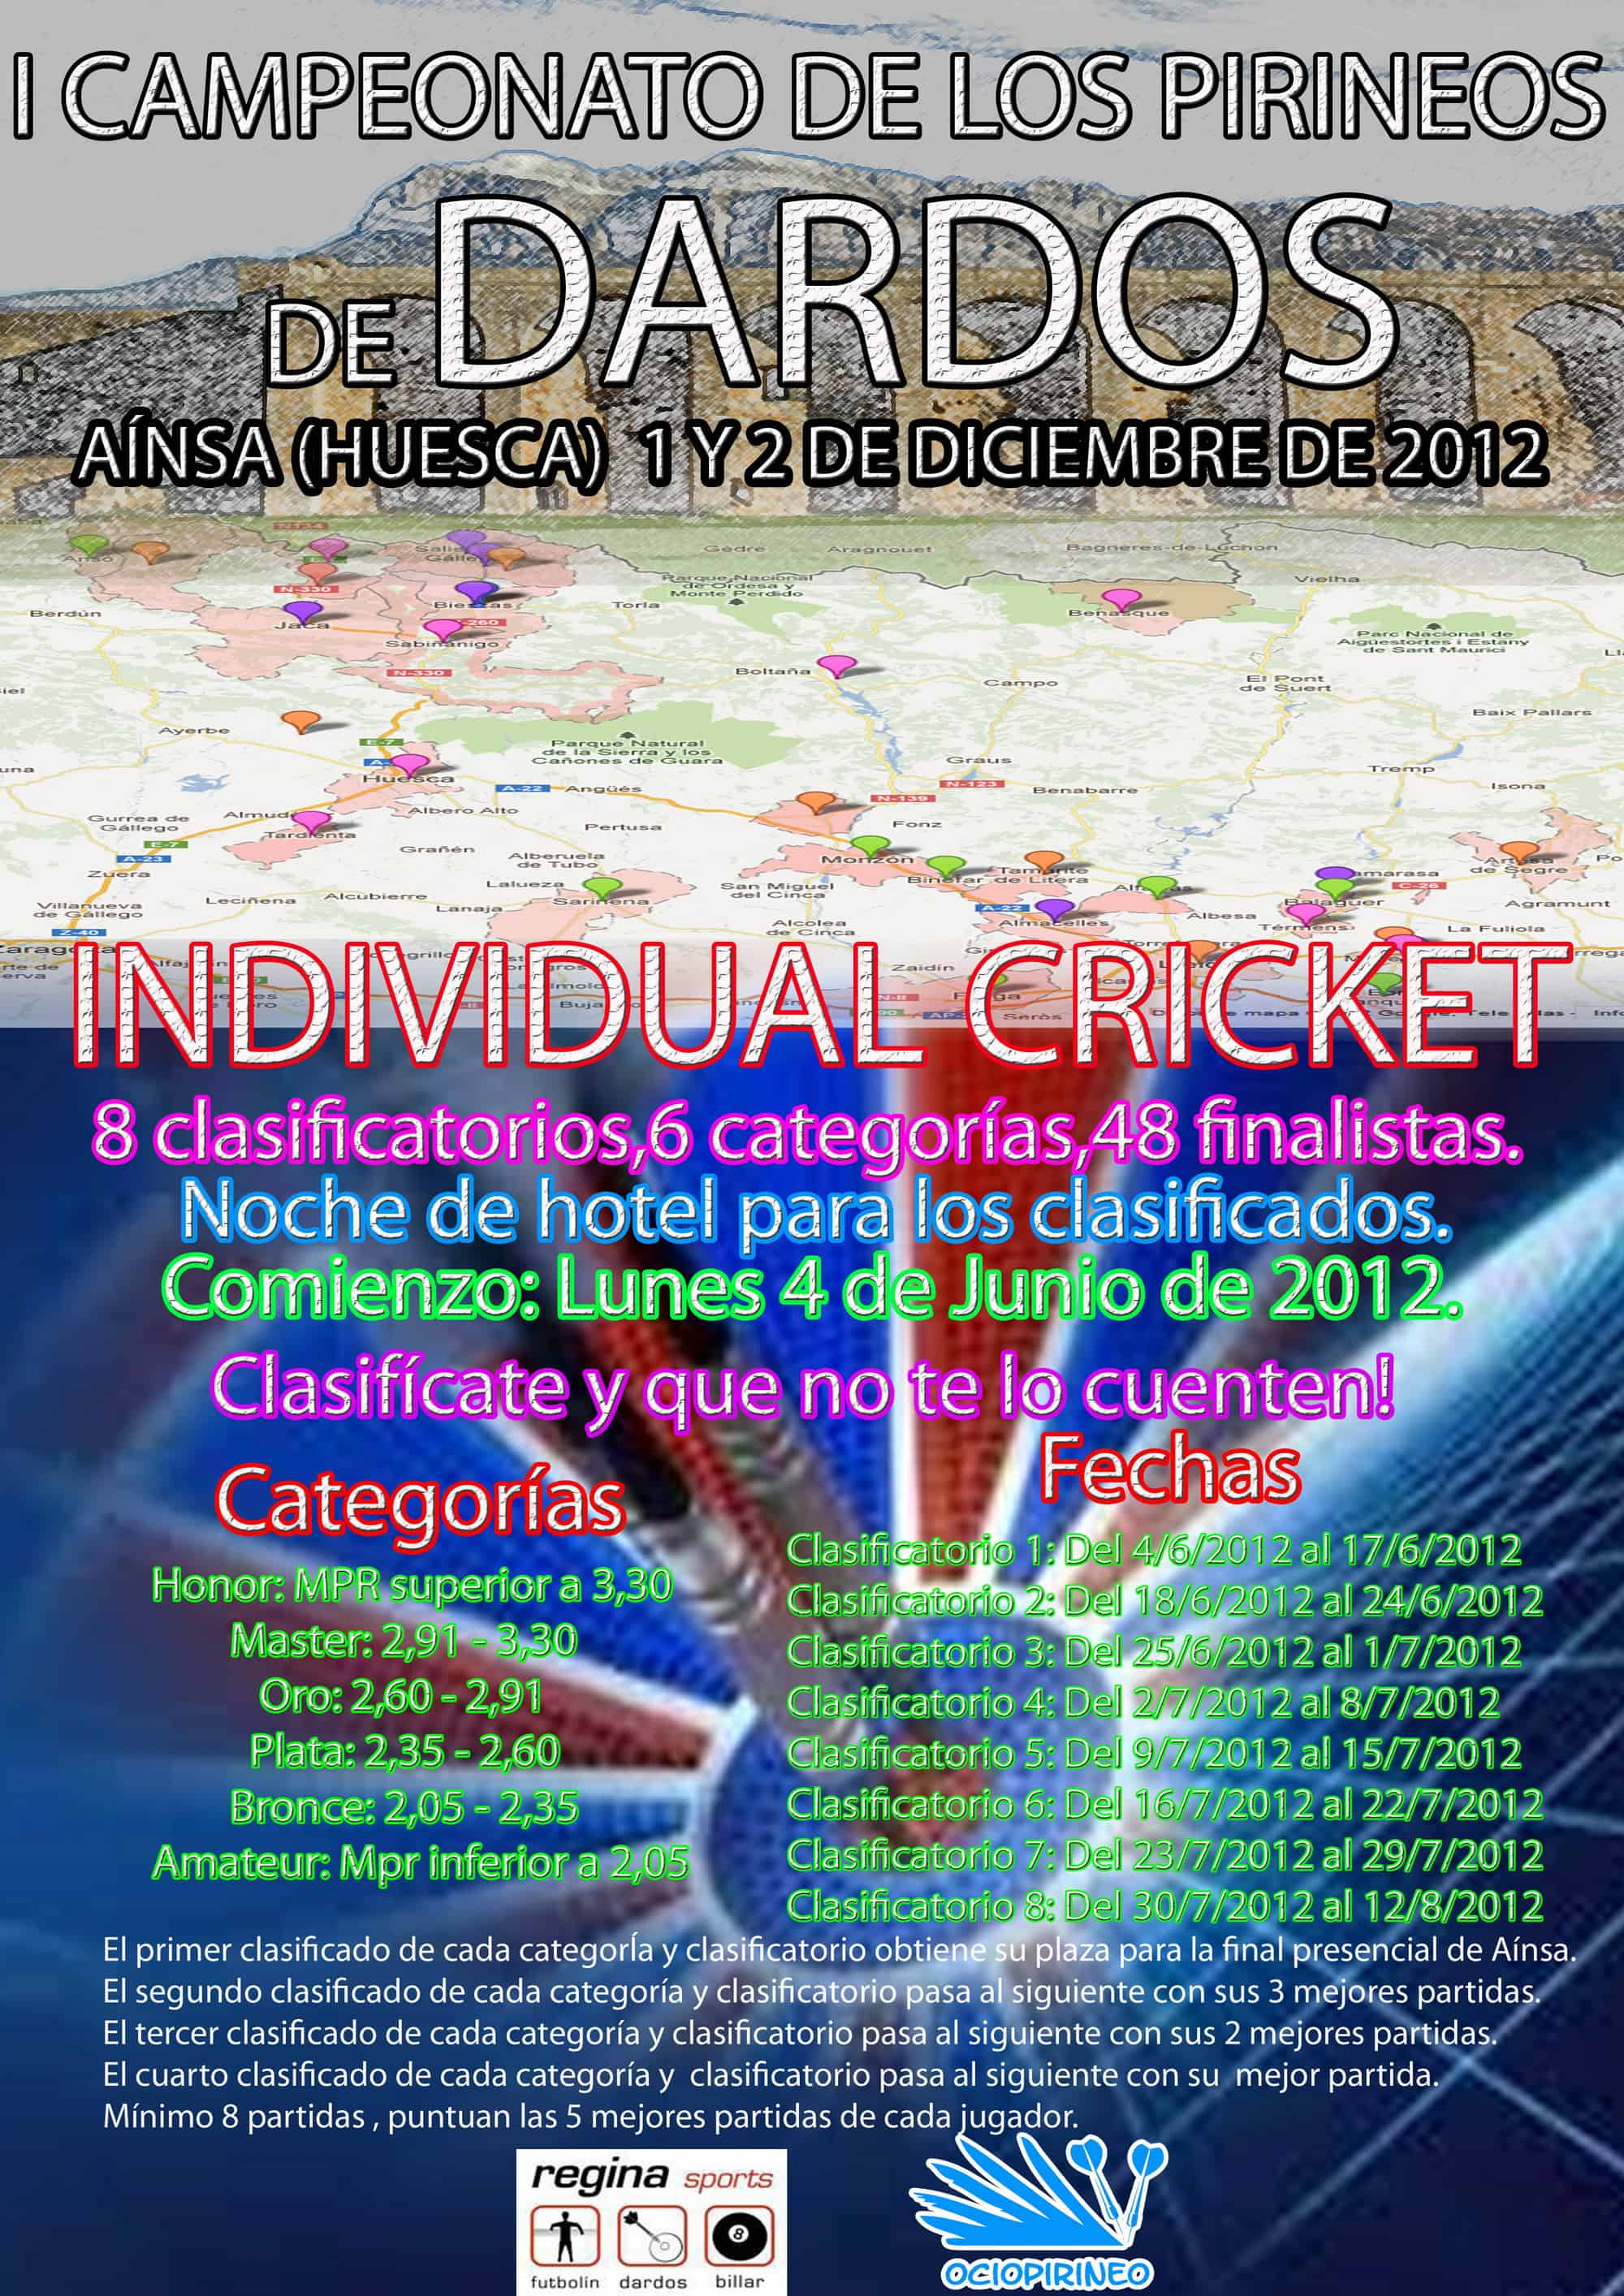 individial_cricket_pirineos1.jpg